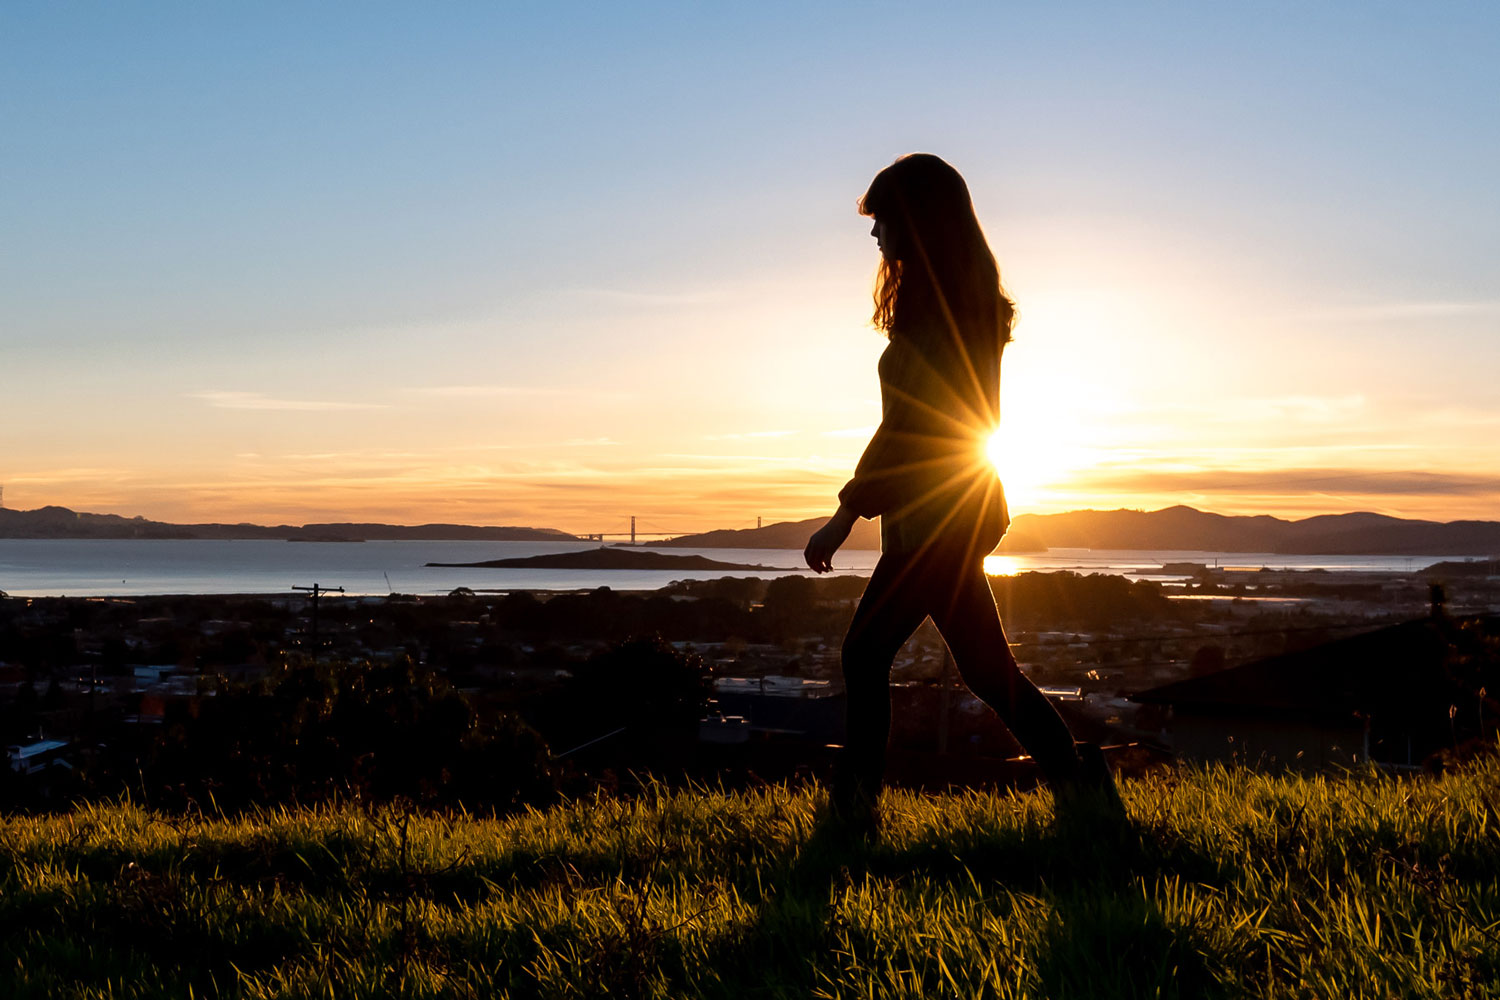 teen silhouette at sunset over San Francisco Bay